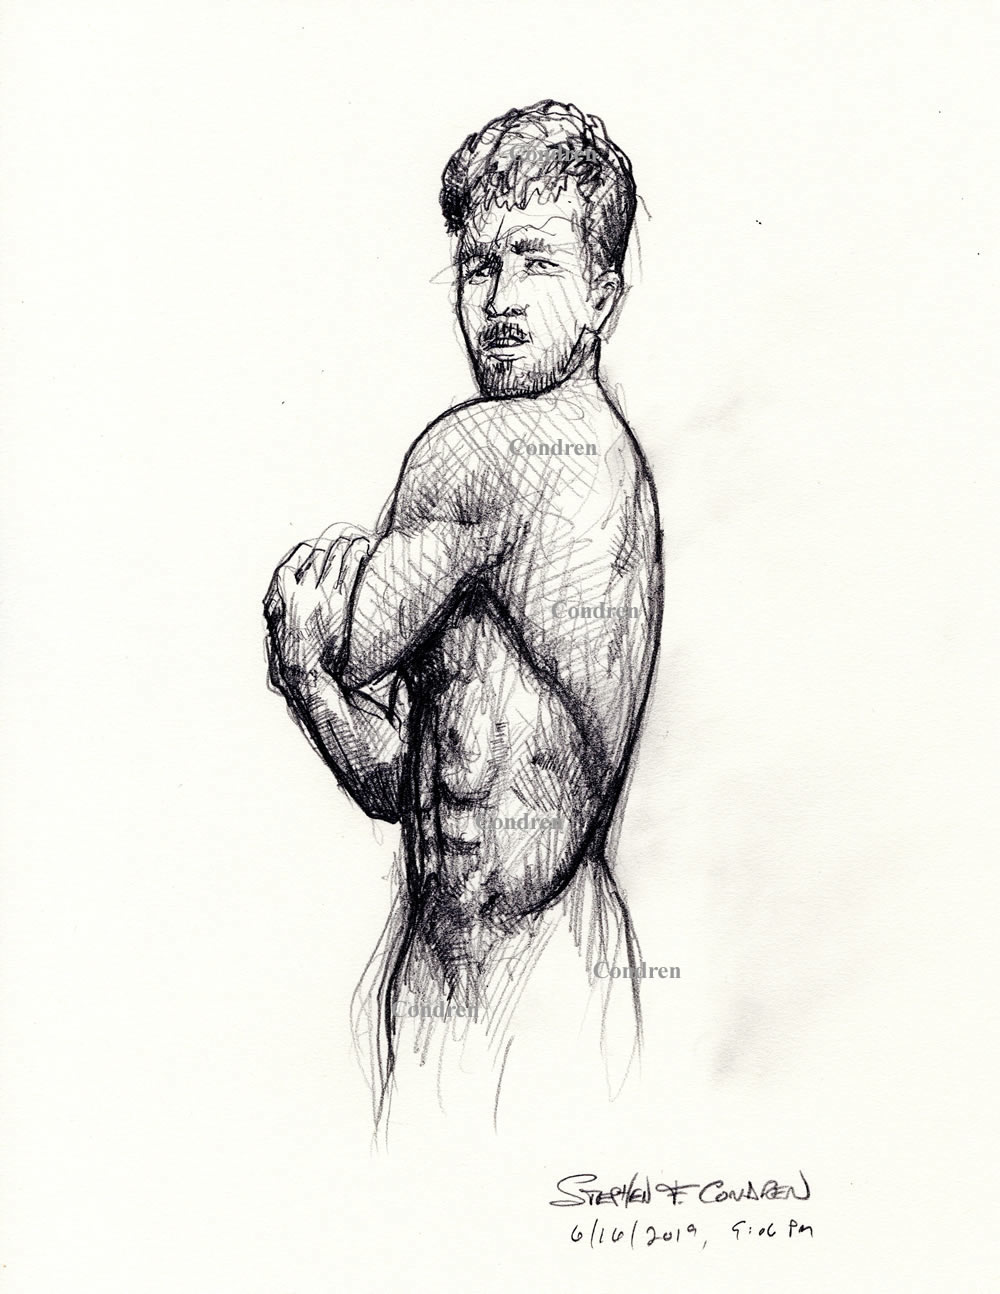 Male figure drawing #000Z, or manly physique sketch with pencil contour lines by artist Stephen F. Condren of Condren Galleries, with gay LGBTQ approved prints, and scans.